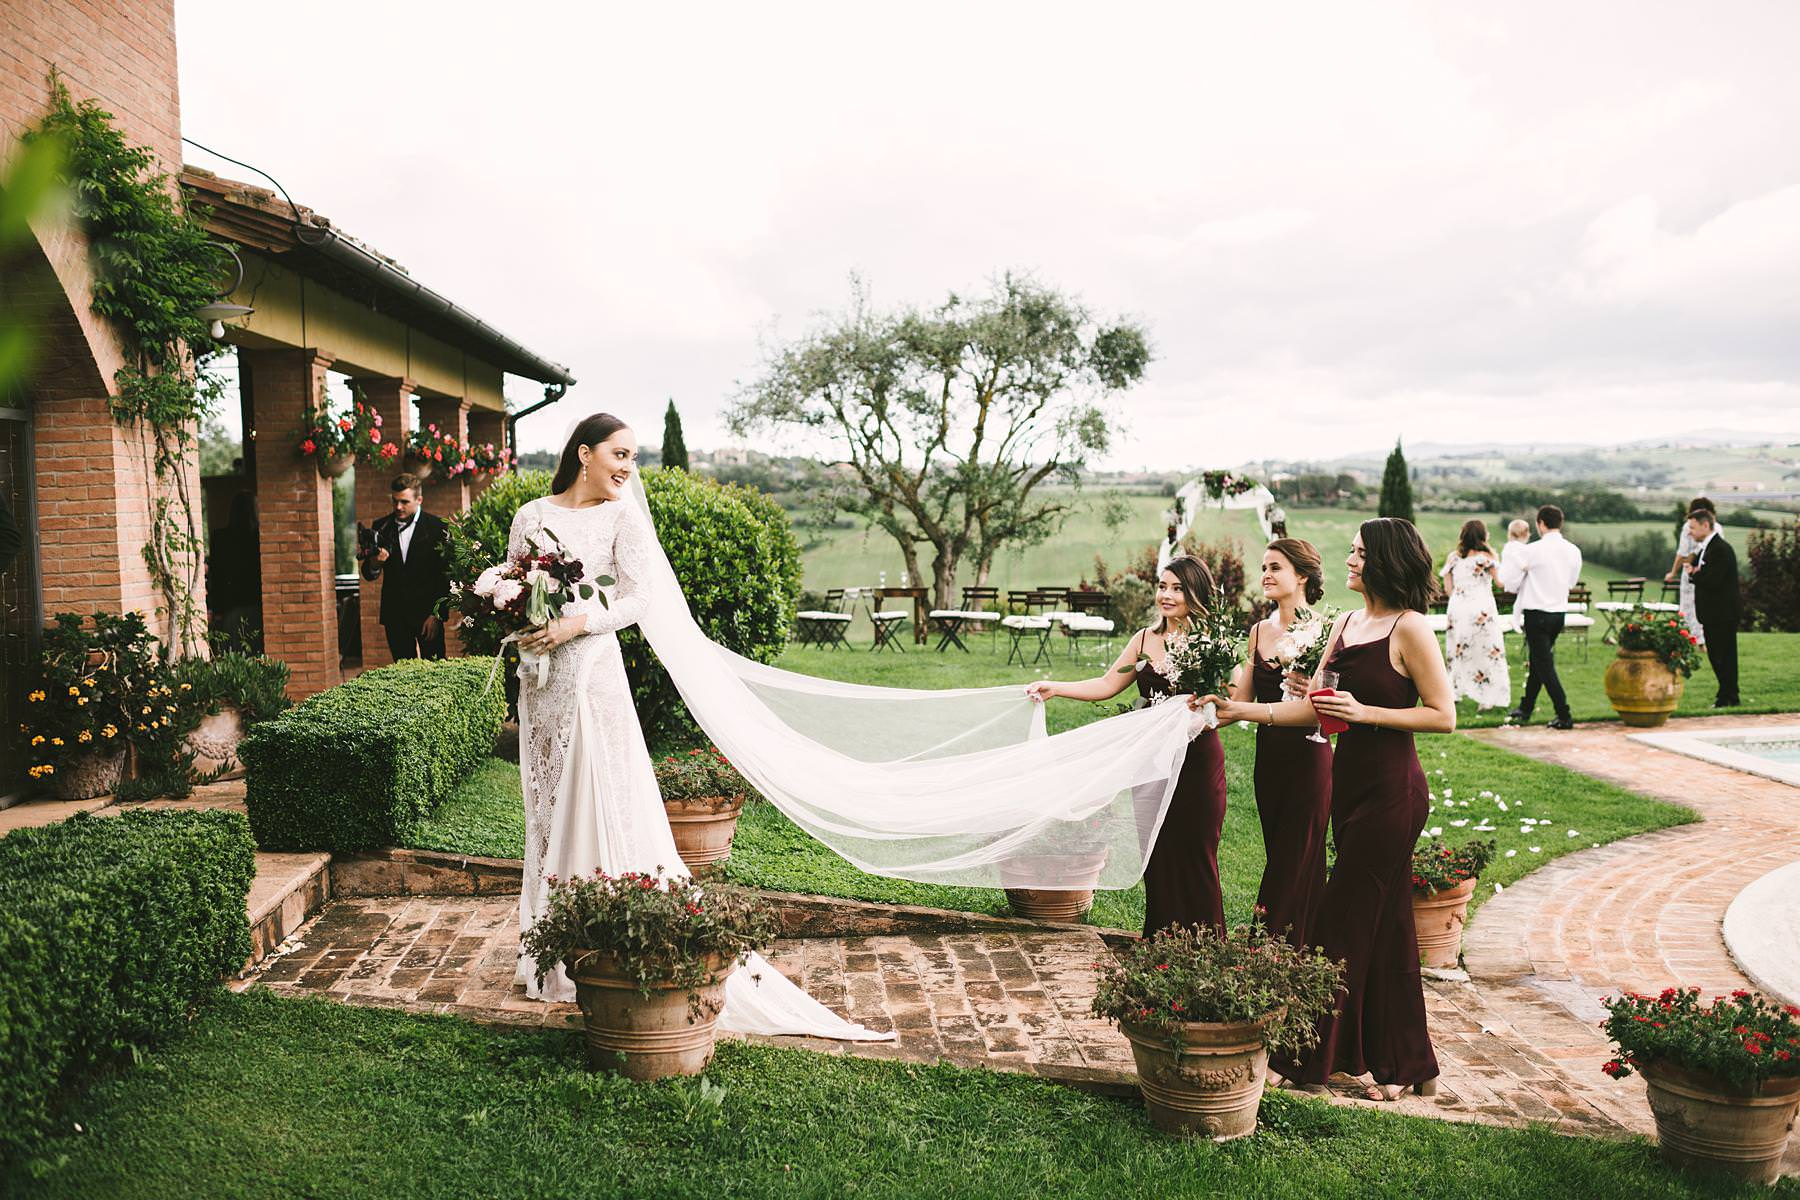 Elegant bride Holly in here Grace Loves Lace wedding gown with bridesmaids. Destination wedding in Umbria at Villa l'Antica Posta